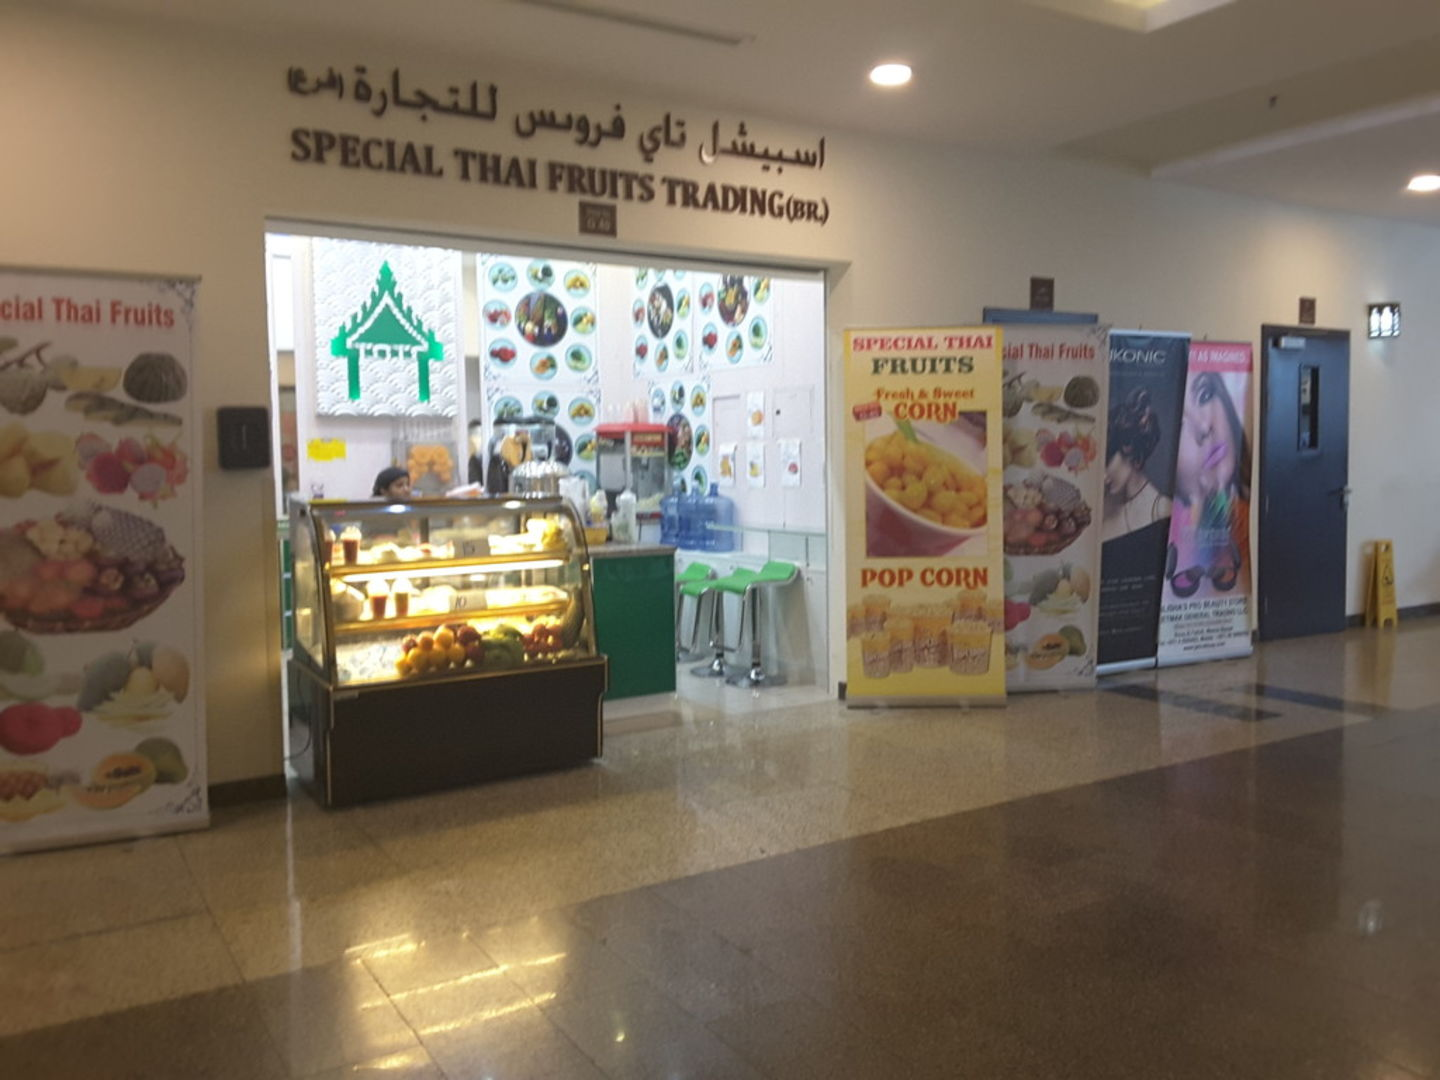 Walif-business-special-thai-fruits-trading